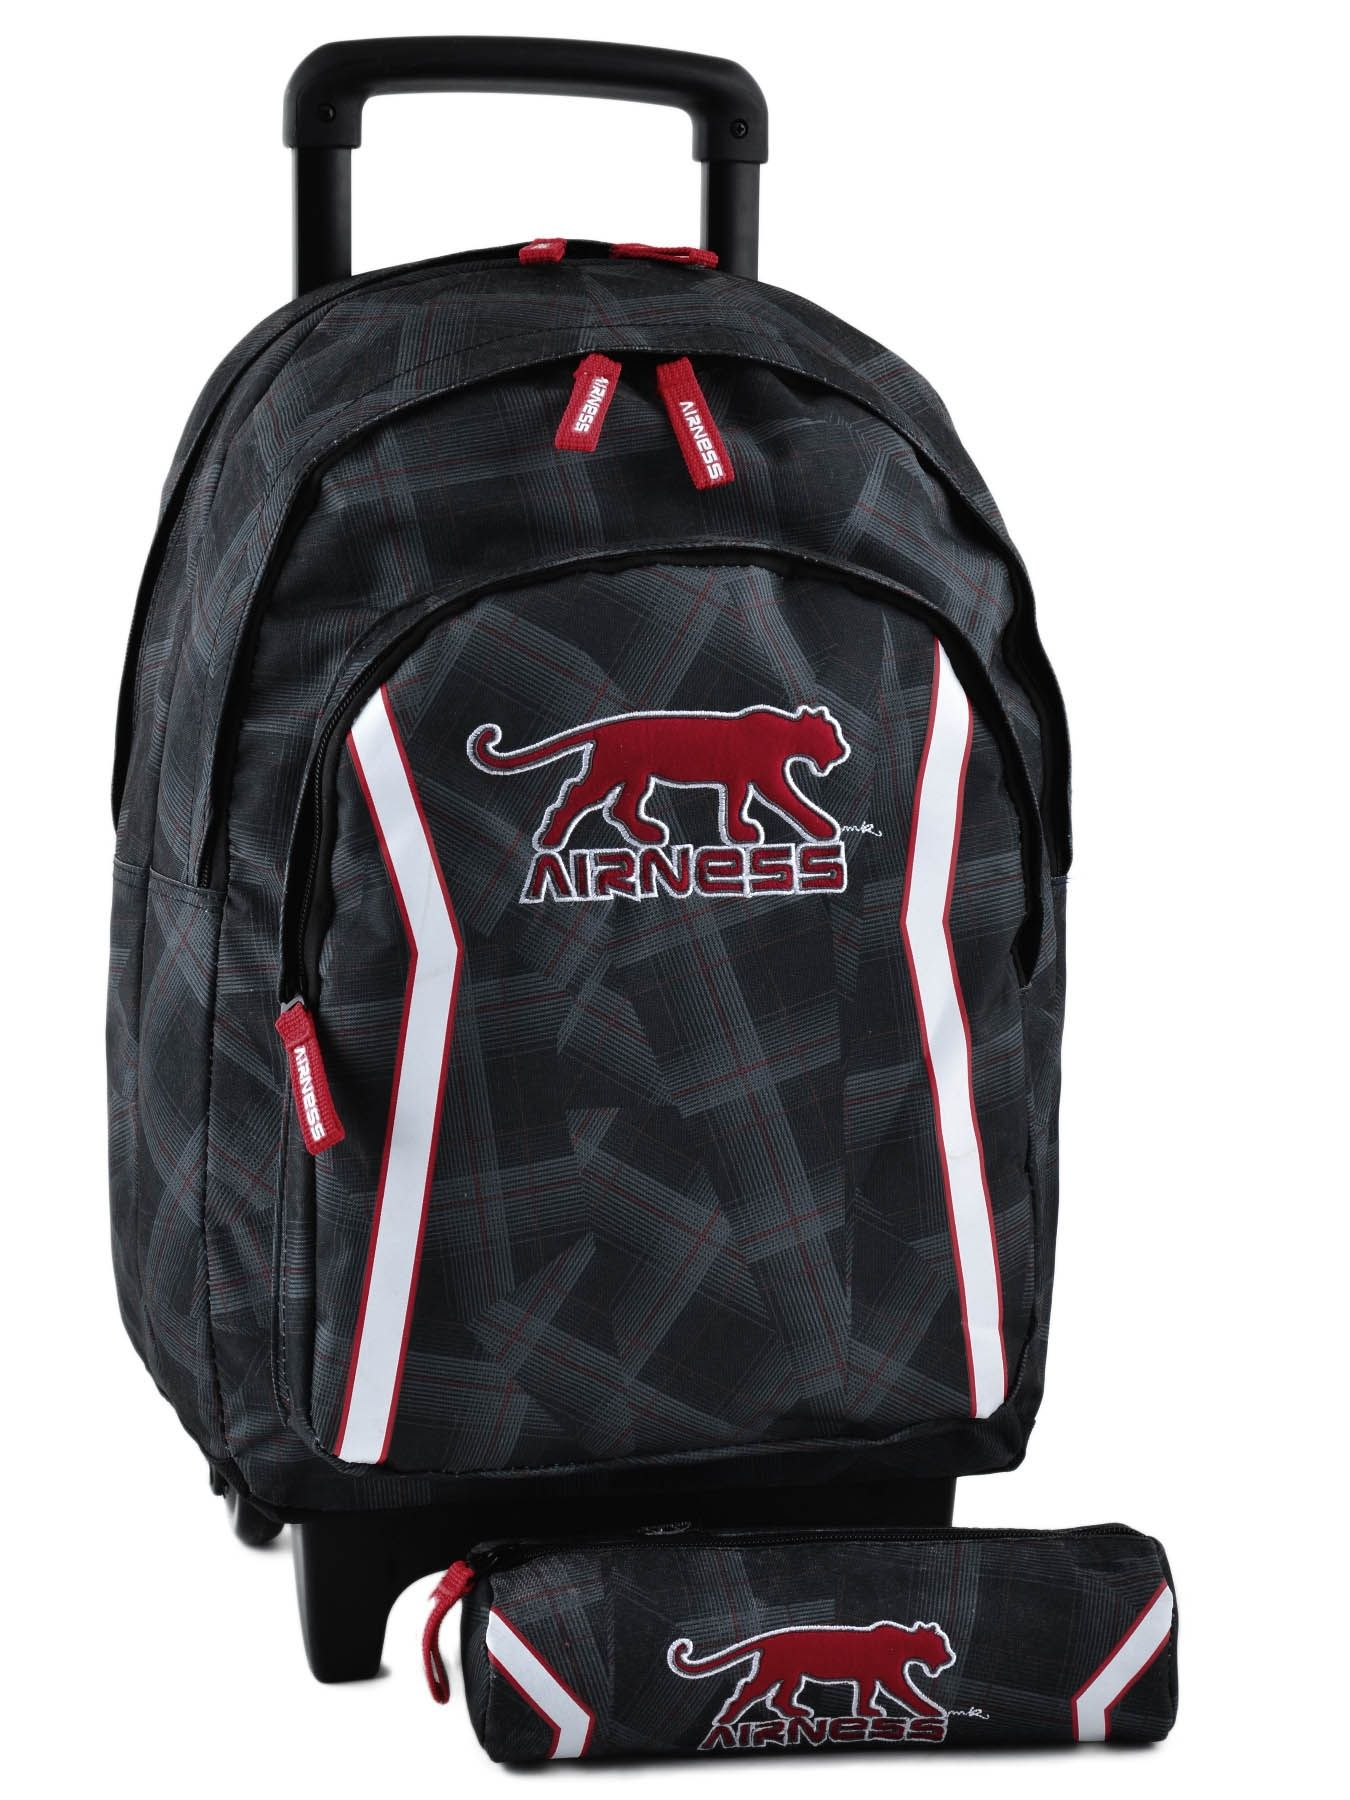 cute school bags sac ecole a roulette airness. Black Bedroom Furniture Sets. Home Design Ideas